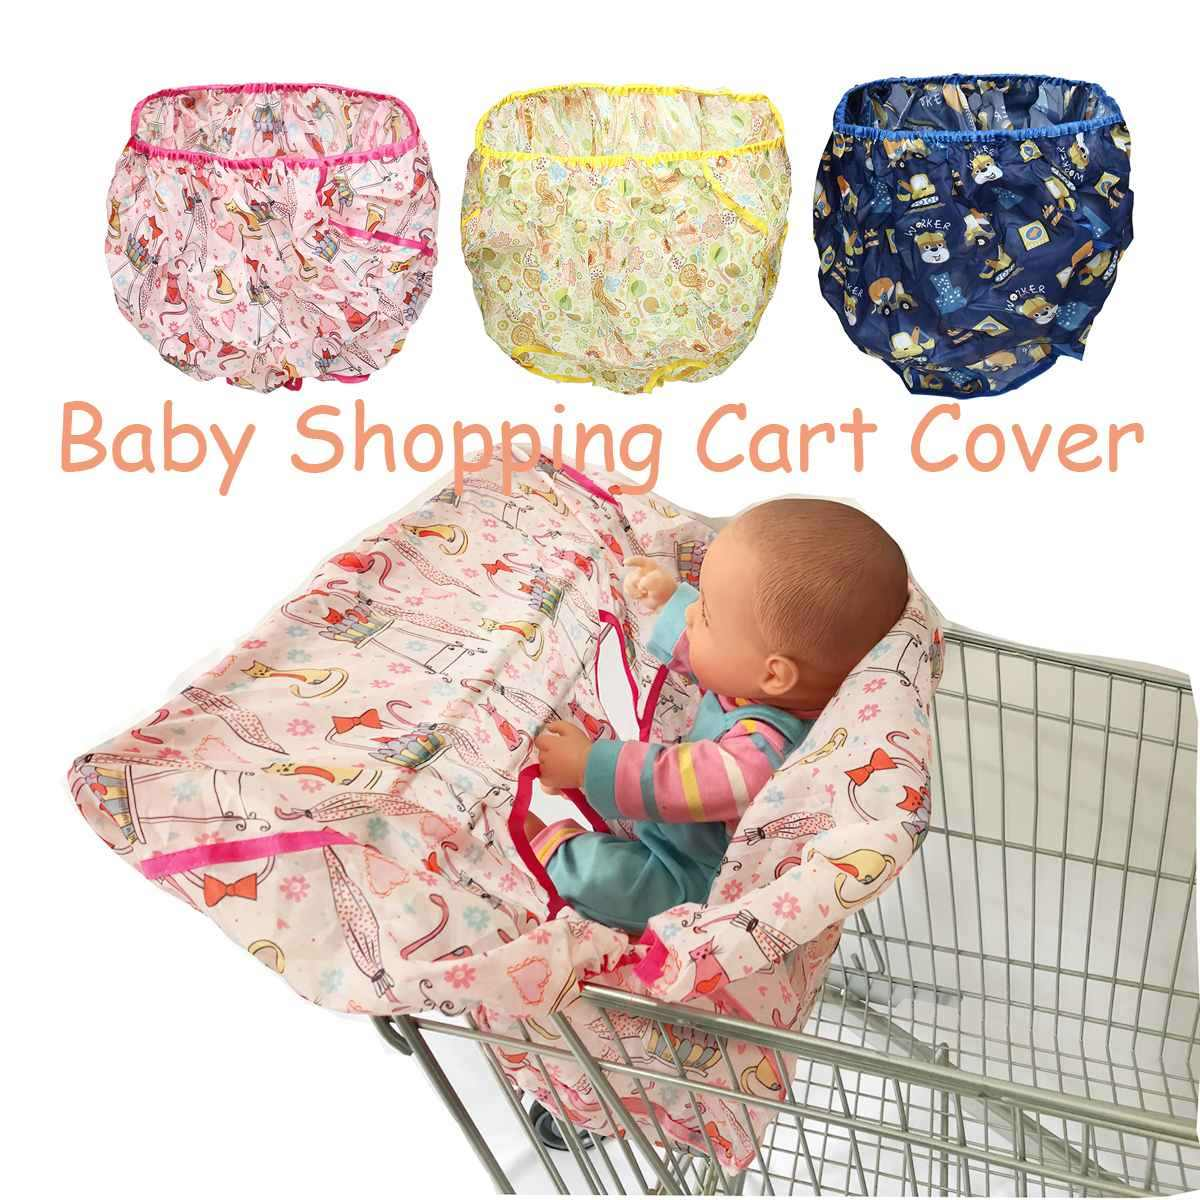 Baby Shopping Cart Cover Breathable Infant Kids Supermarket cart seat Pad Cushion Anti dirty Folding Shopping bag +Storage bag